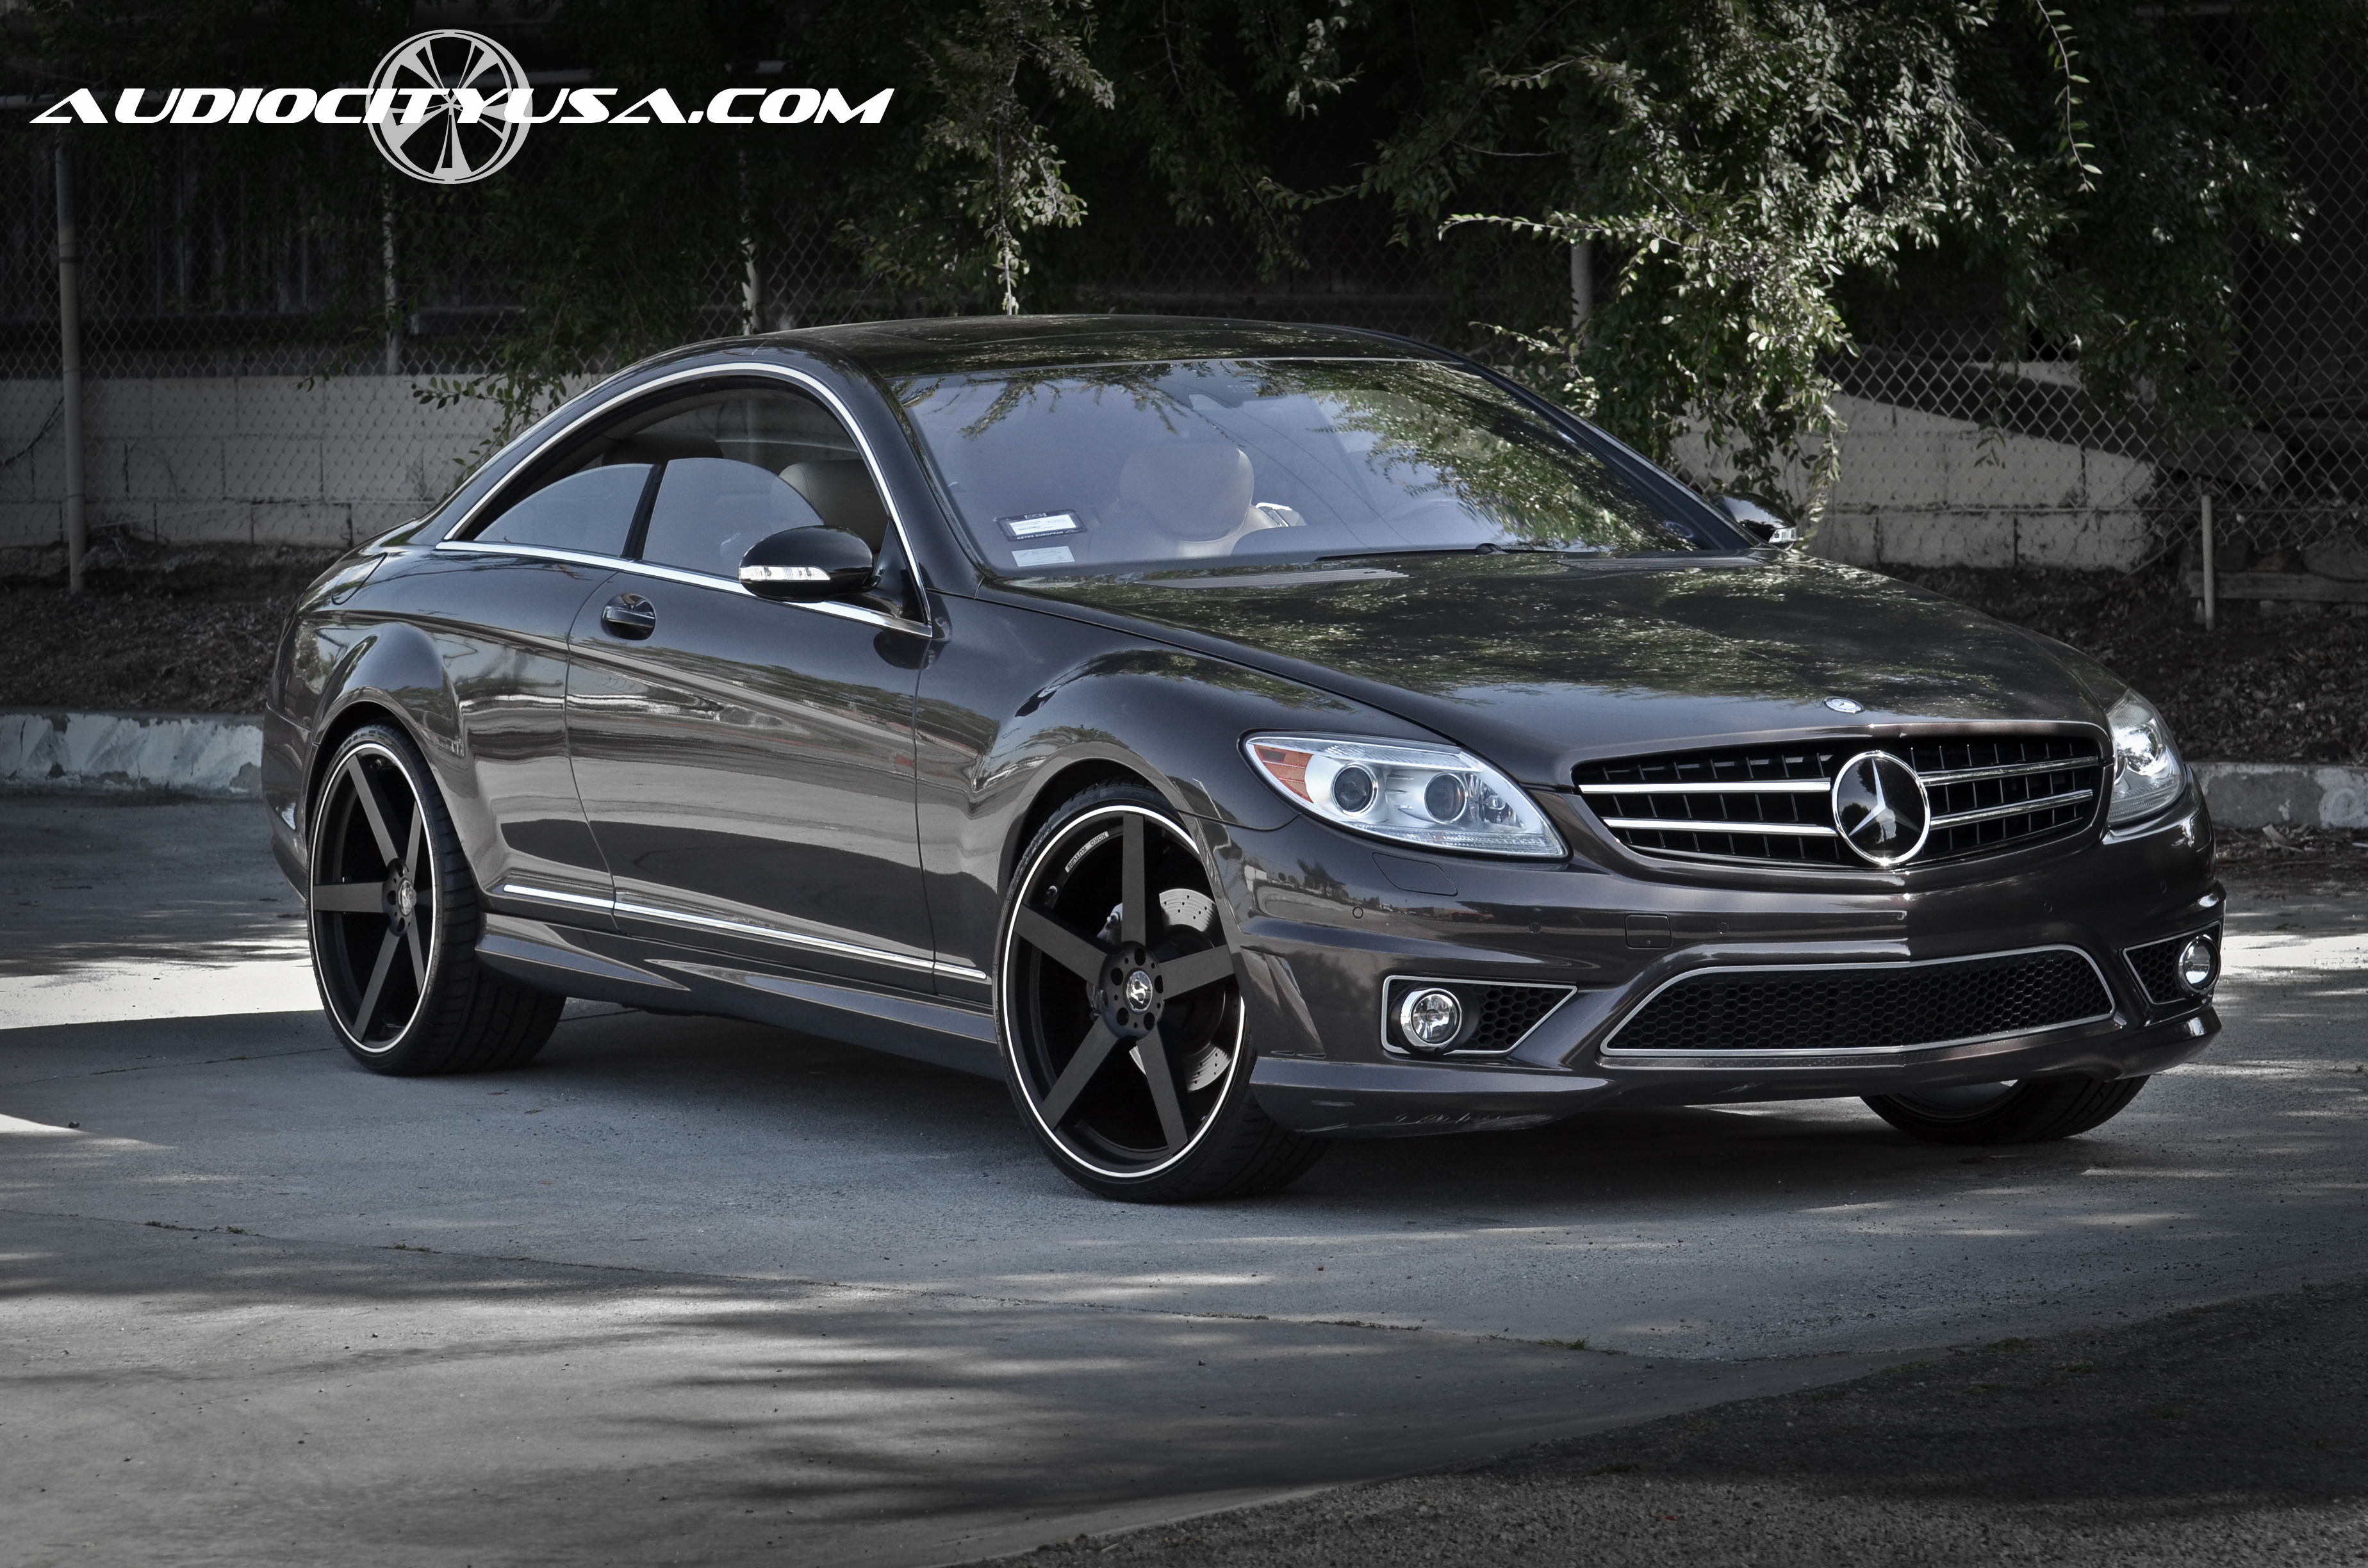 Koko Kuture Sardinia-5 Black 22X9_22X10,5 on Mercedes Benz Cl 63 AMG